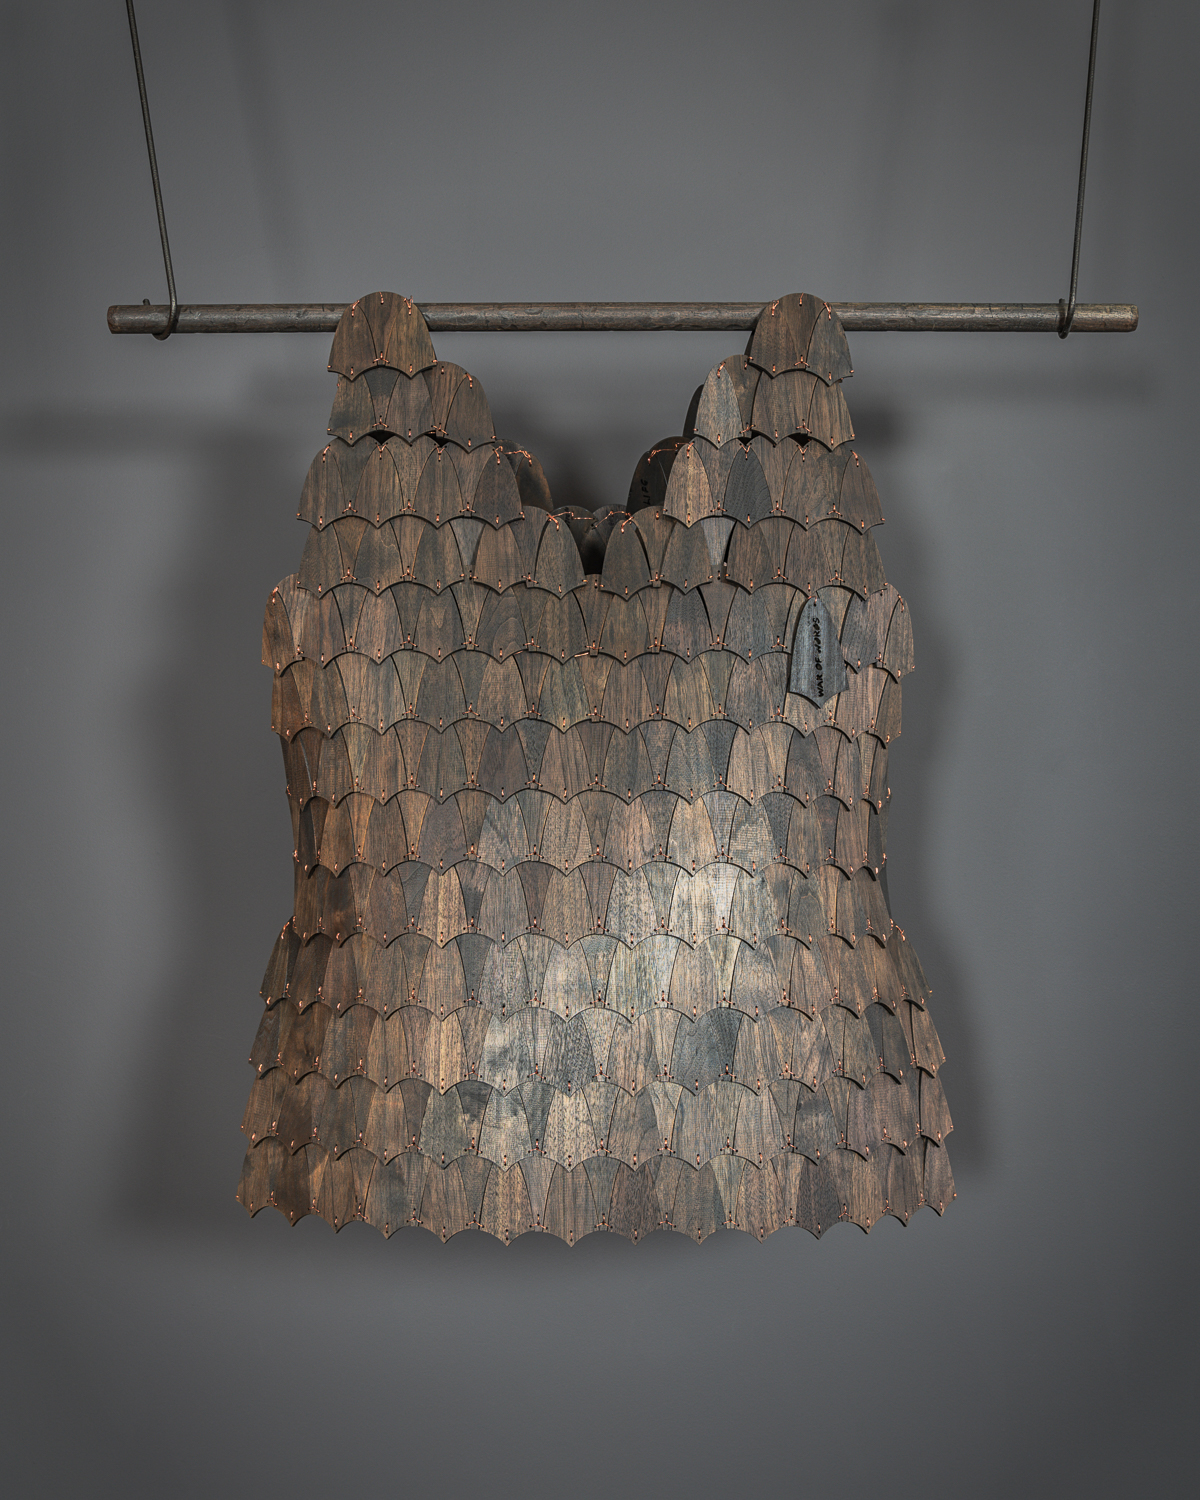 New Series Armor From Words… Words For Armor: Fabricated from 537 Pieces of Walnut, Handsewn Together with Copper Wire